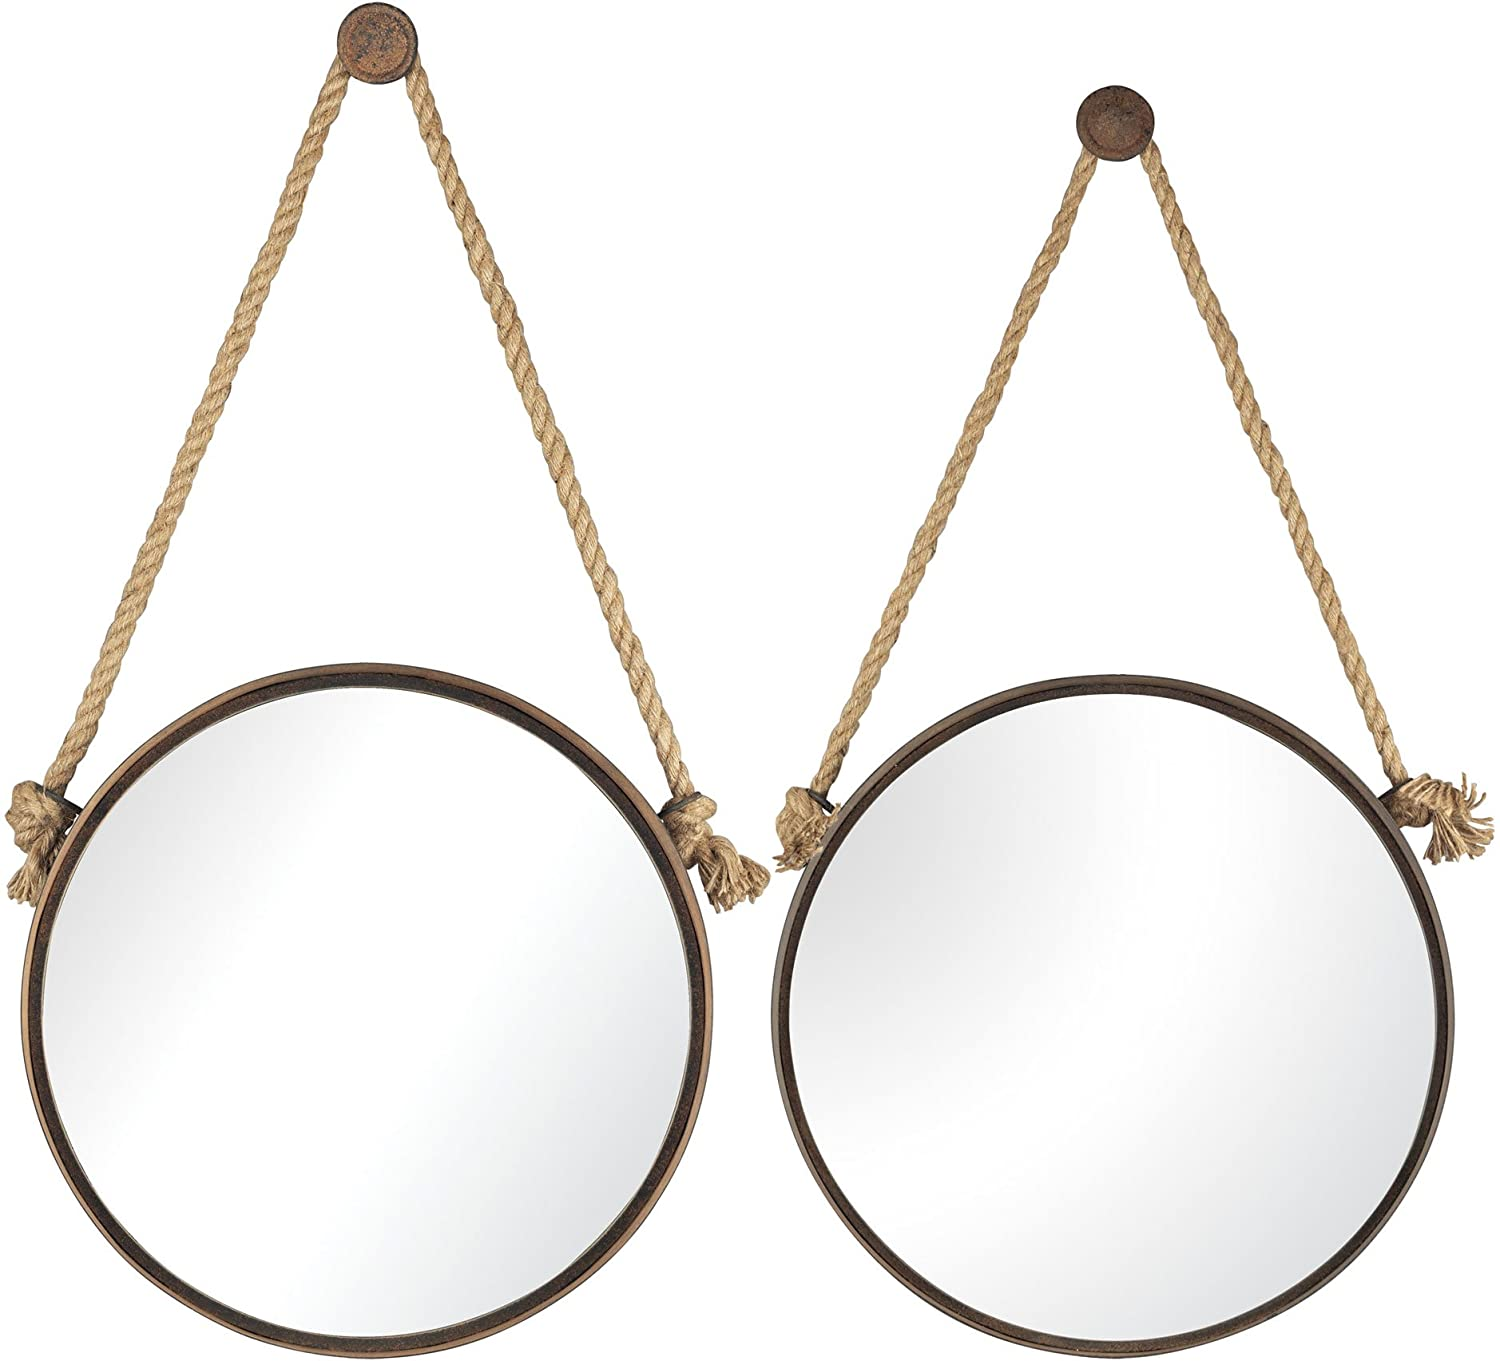 Round Metal Mirror With Rope Part - 38: Amazon.com: Sterling 53-8502 Iron Holder Mirrors On Rope, Round, Rust, Set  Of 2: Home U0026 Kitchen